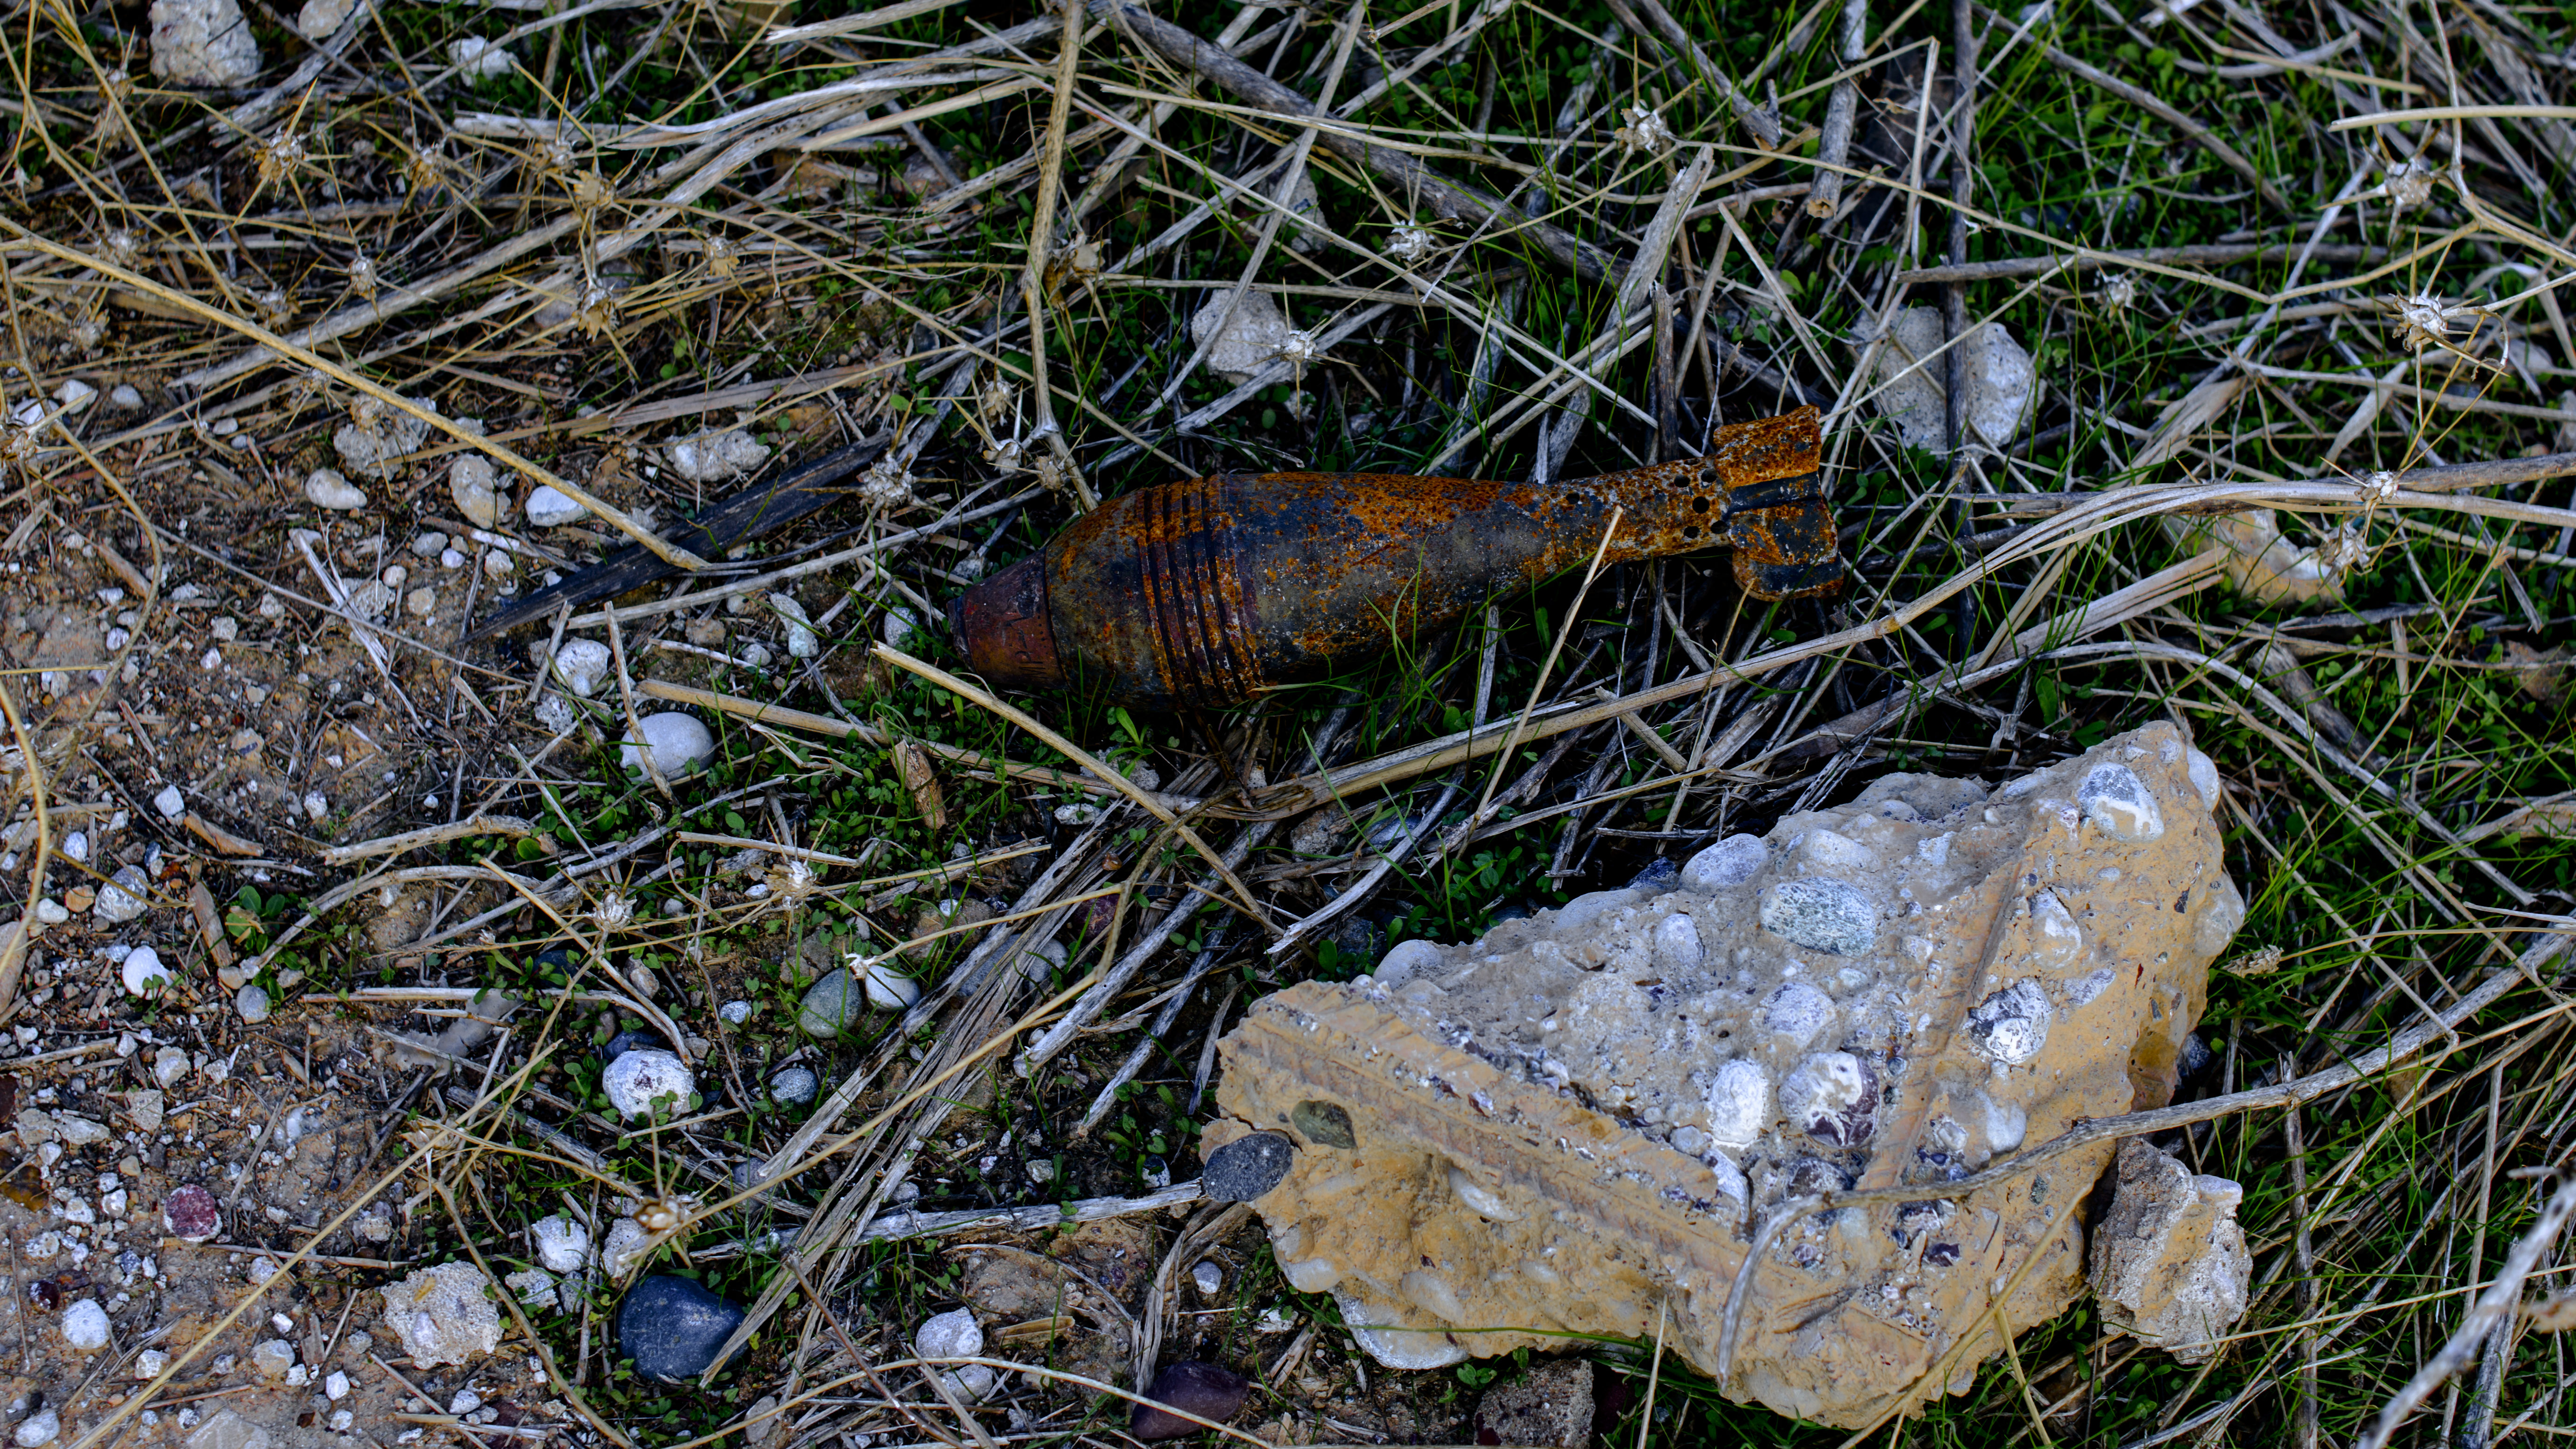 Left Behind by War: Unexploded Ordnance Keeps Killing Displaced Iraqis